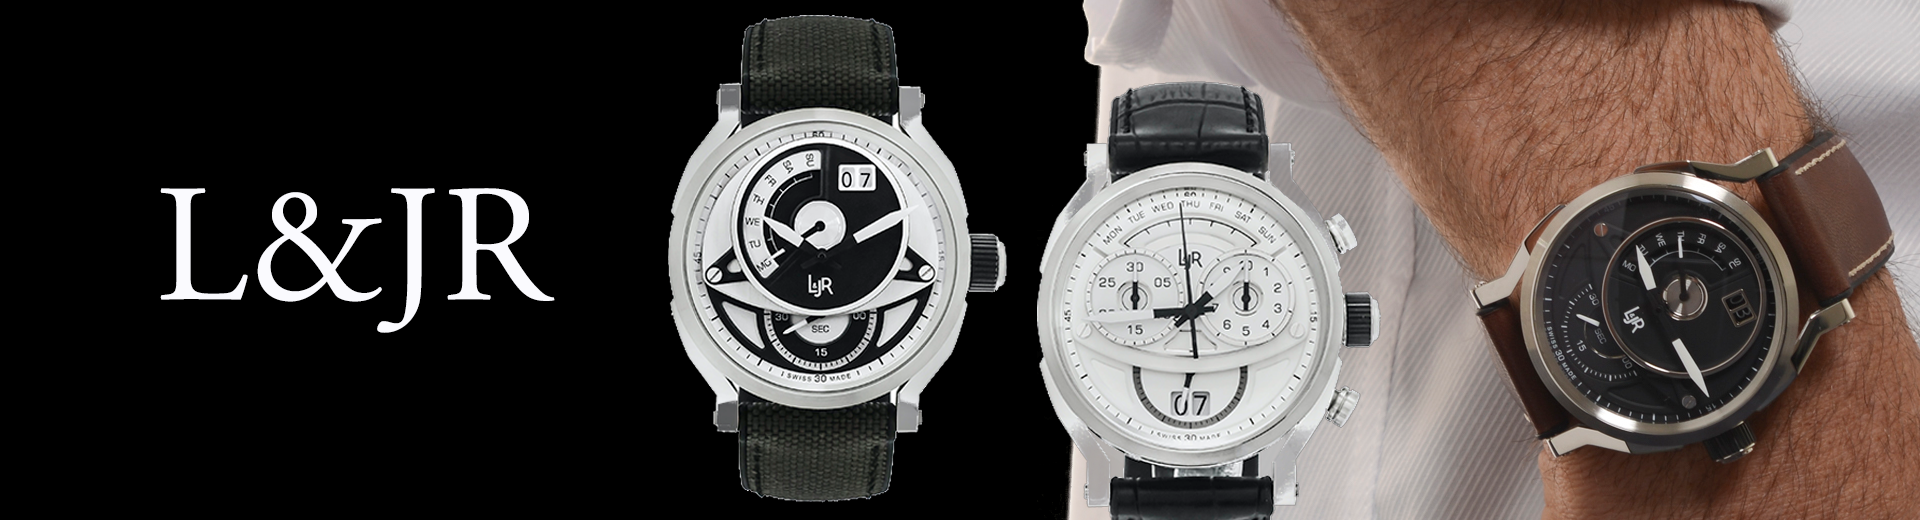 L&JR Watches Combine Unconventional Style with Affordability to Stand Out from the Crowd